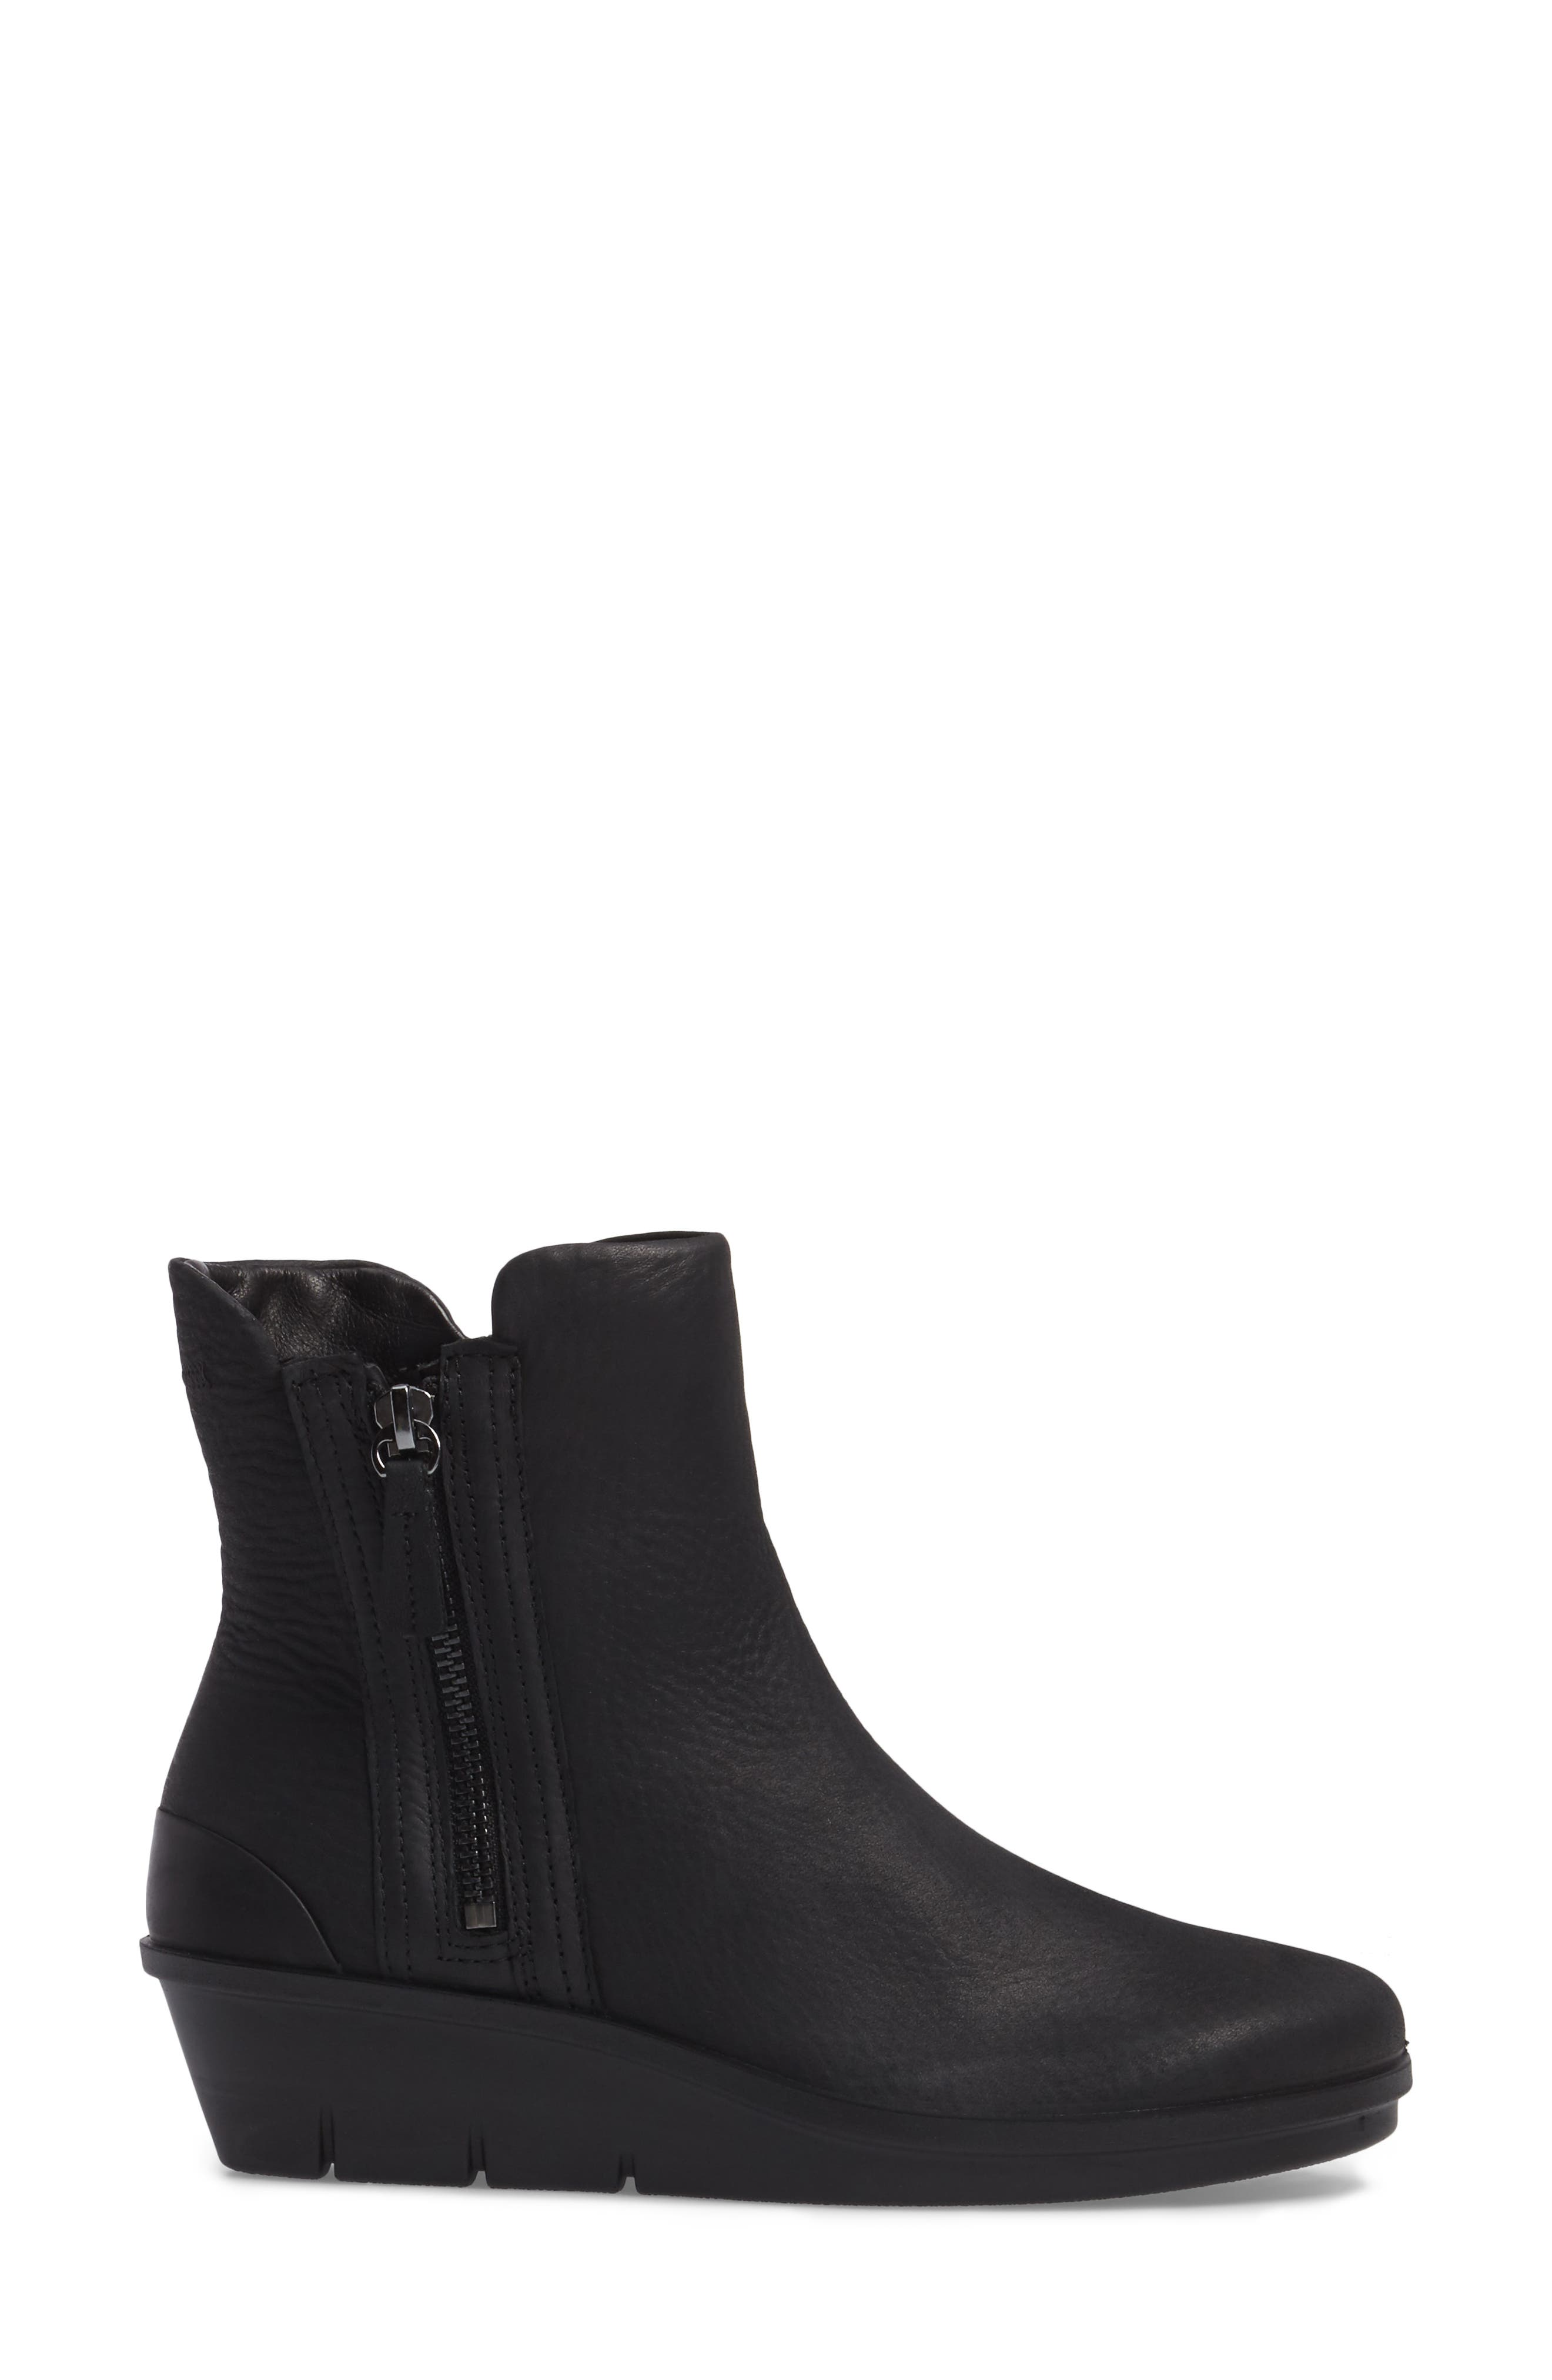 Skyler Notched Wedge Bootie,                             Alternate thumbnail 3, color,                             Black Leather